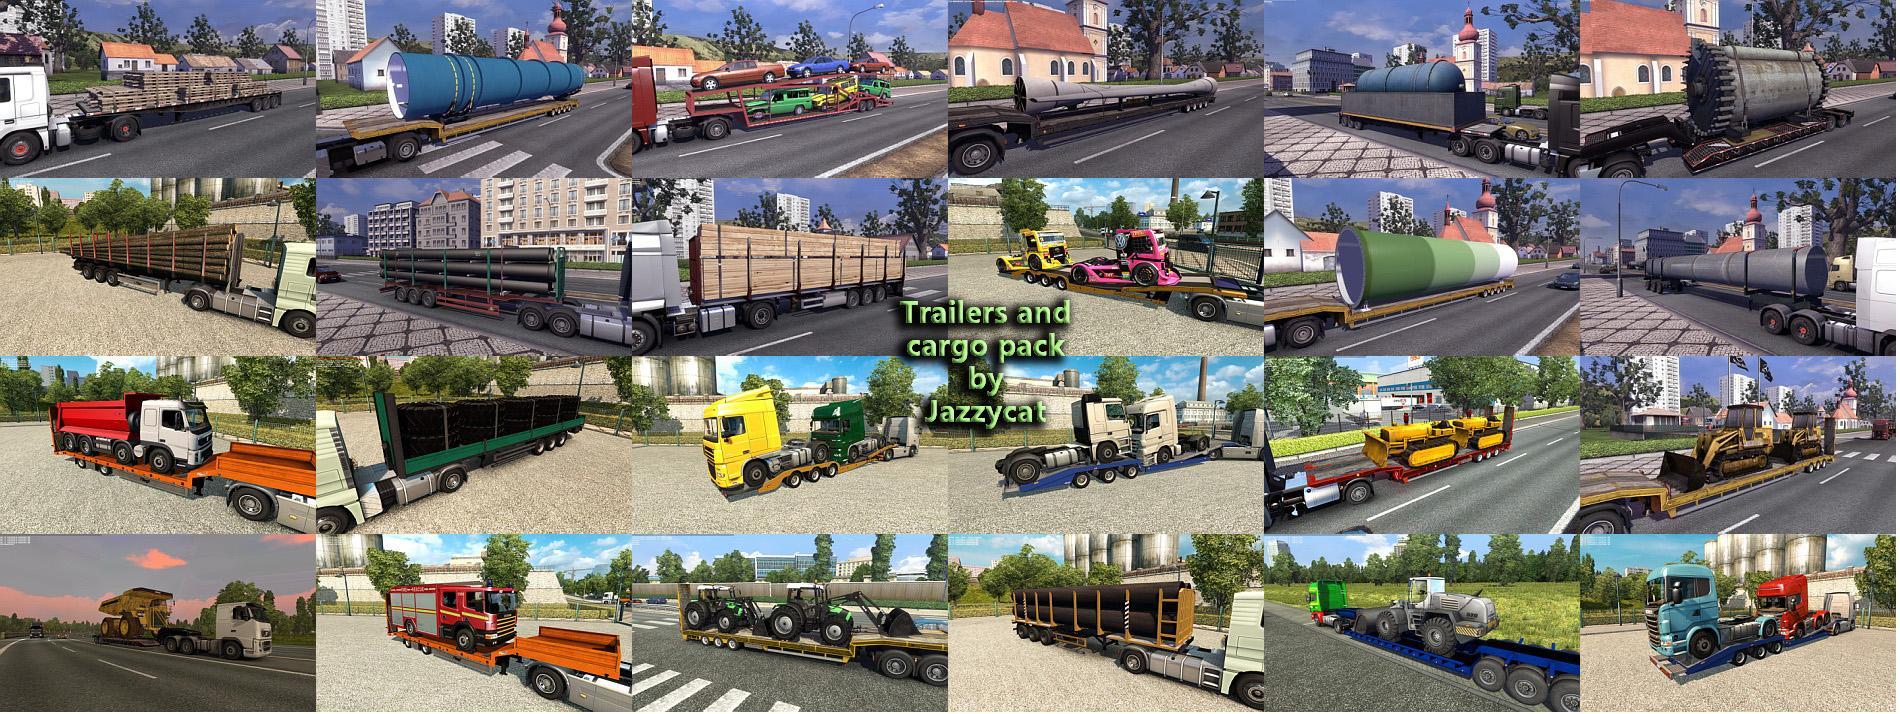 TRAILERS AND CARGO PACK BY JAZZYCAT V3 7 For ETS 2 -Euro